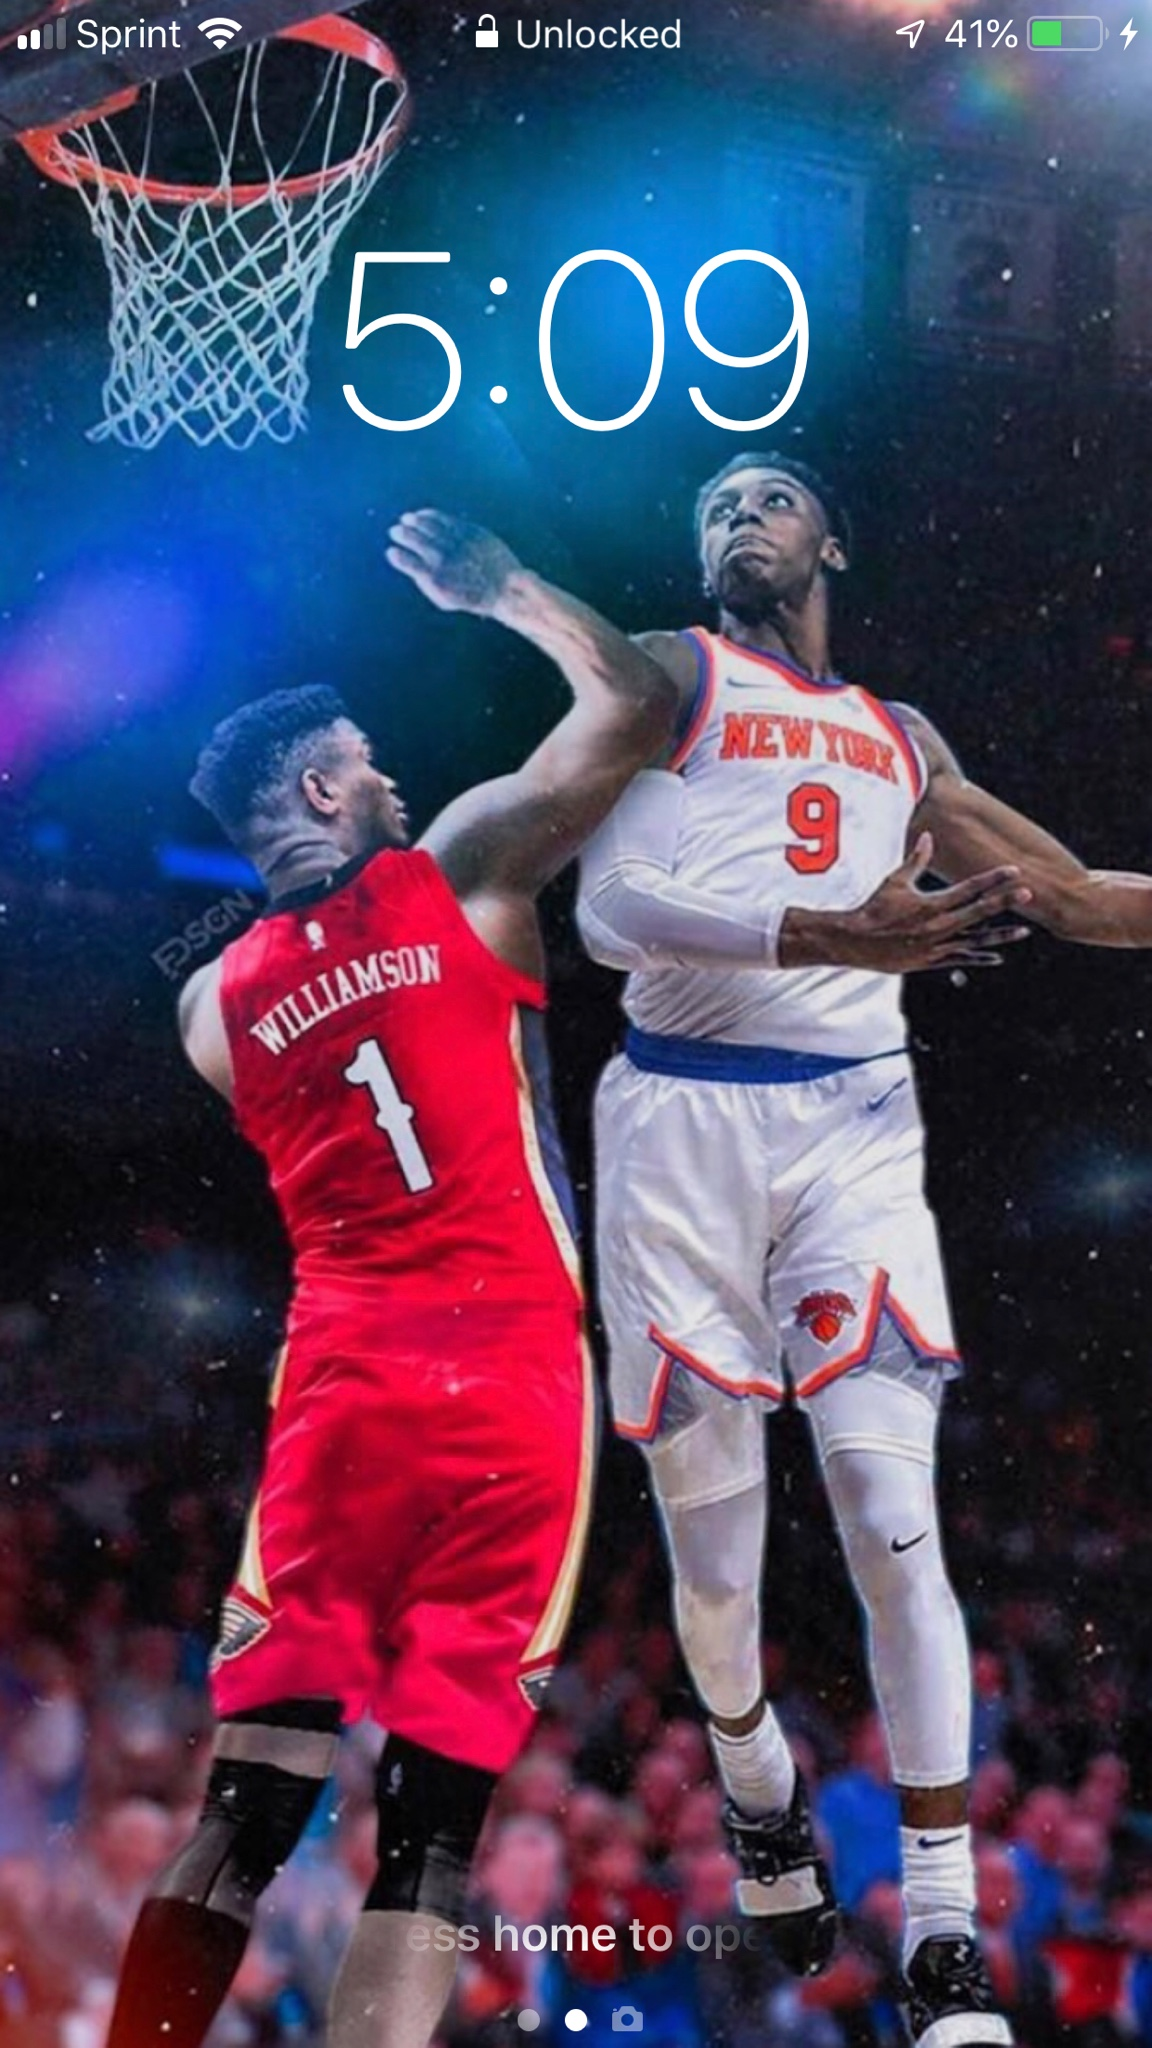 Semi Ot Any Cool Rj Barrett Knicks Photos For A Wallpaper Realgm